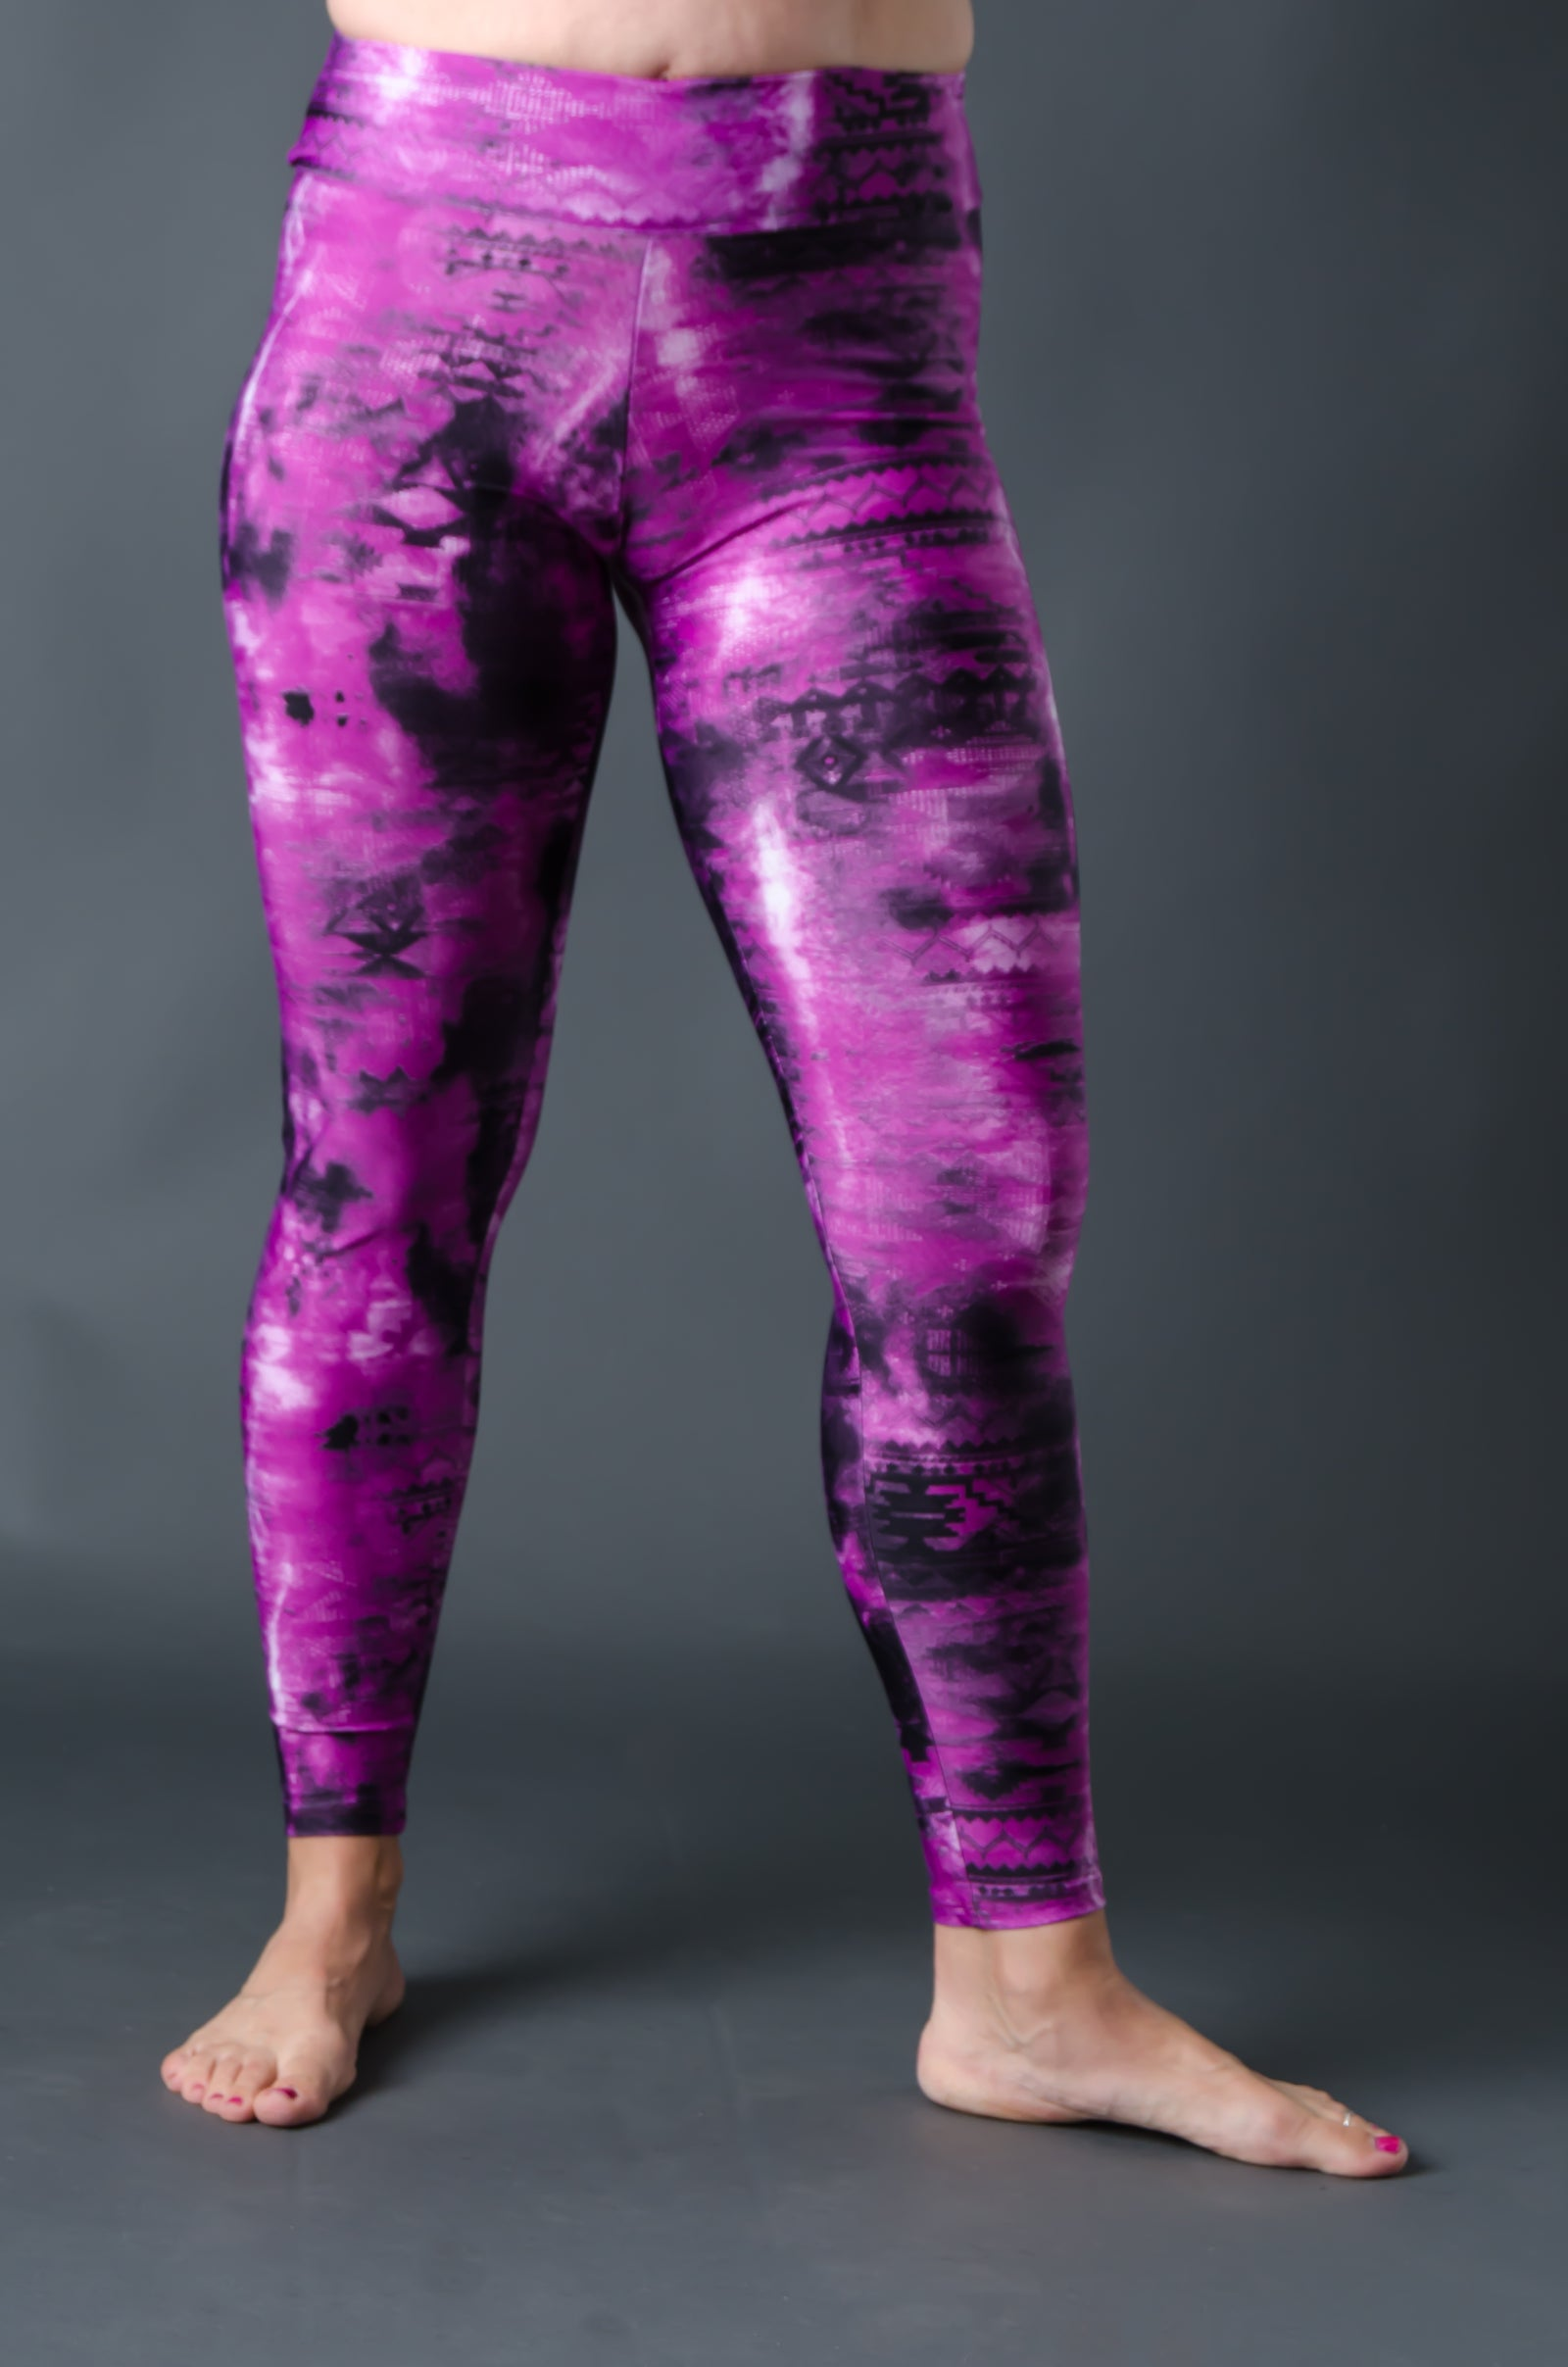 2nd Skin Compression - (Full Length) - Pink Tie Dye